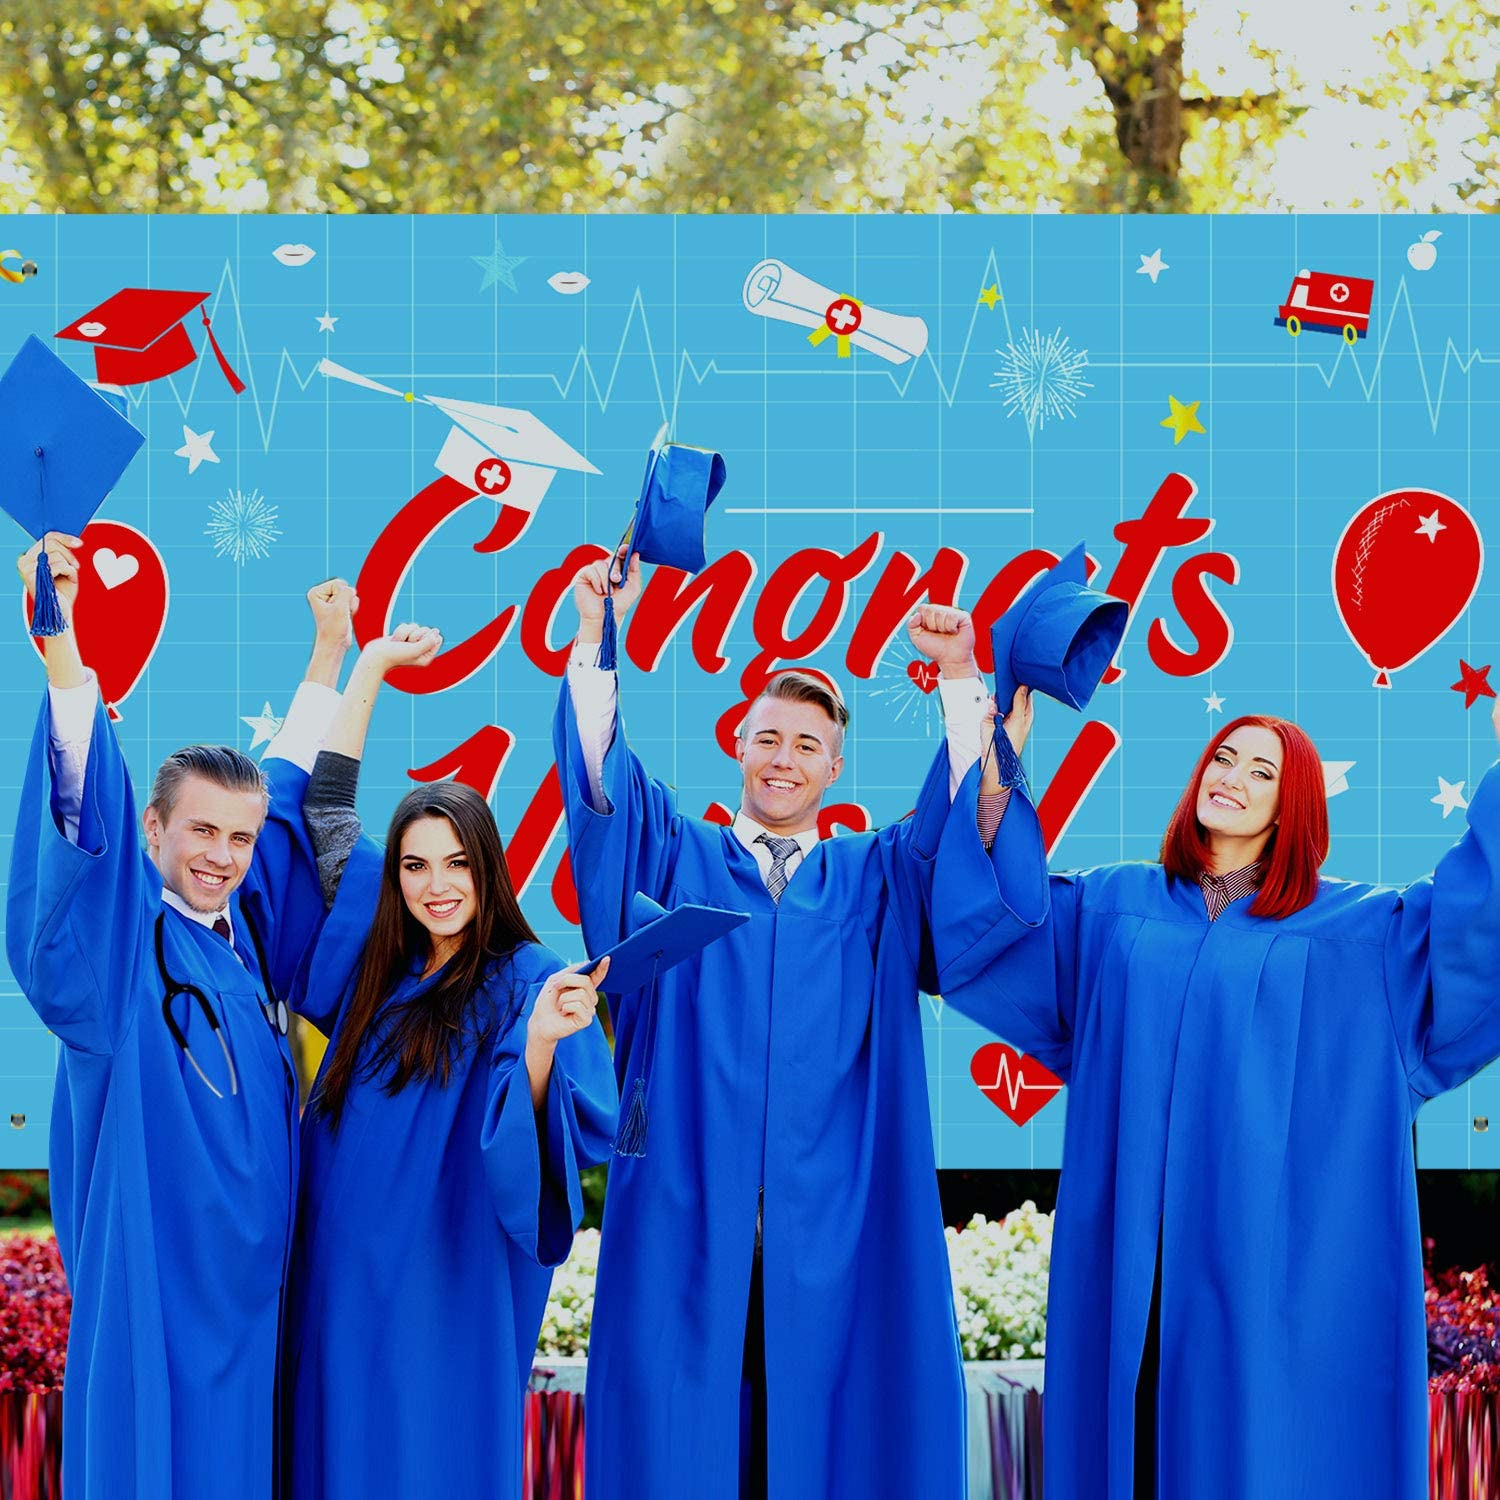 2020 Nurse Graduation Decorations Large Fabric Congrats Nurse Sign Backdrop Banner Background for 2020 Graduation Indoor//Outdoor Party Supplies Blue and Red Nursing Graduation Party Decorations